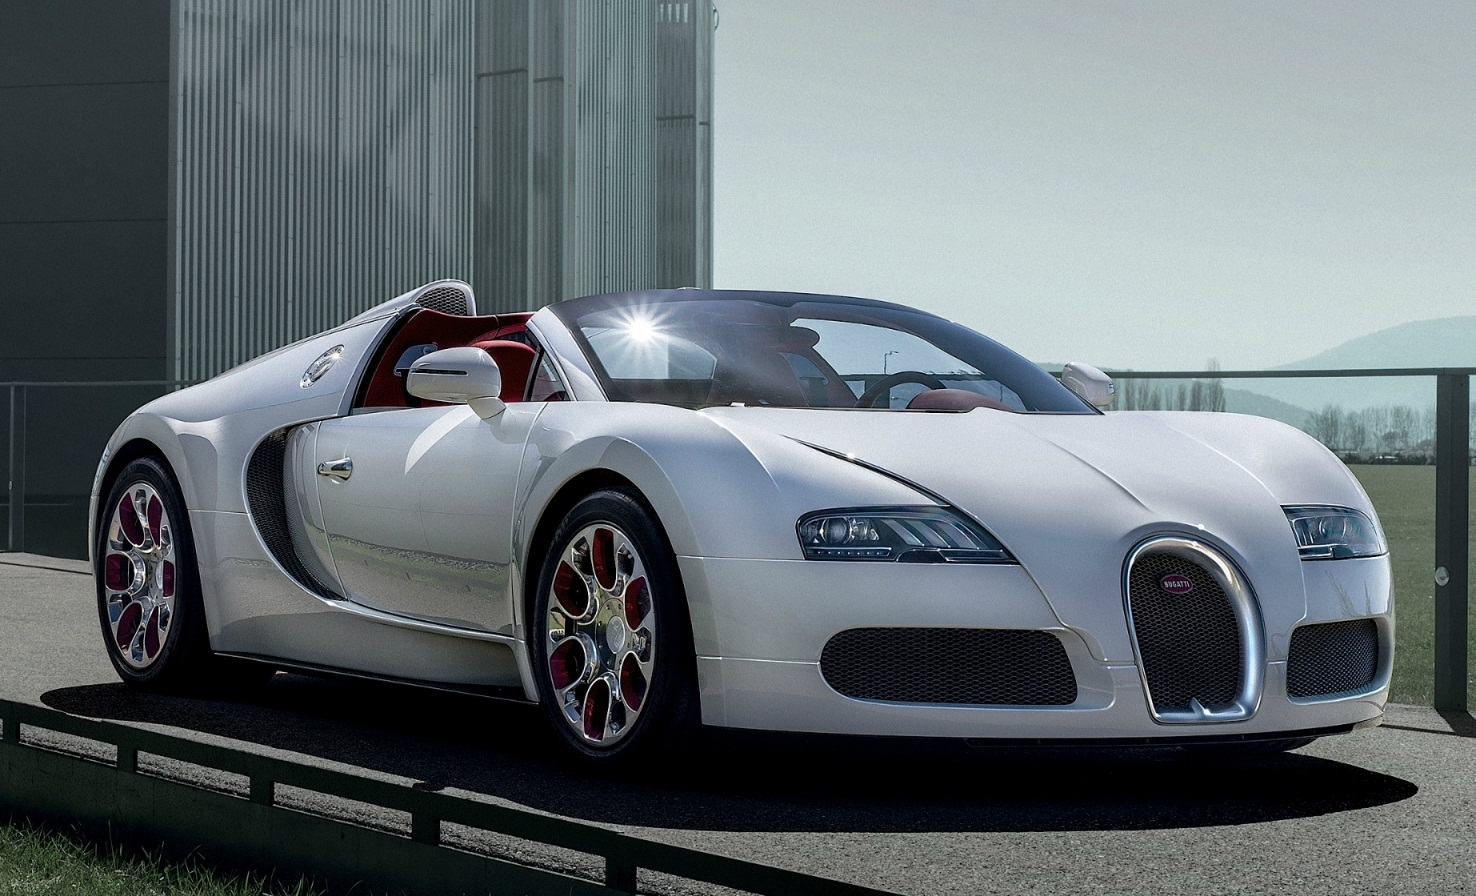 Sport Car Garage: Bugatti Veyron Grand Sport Wei Long (2012